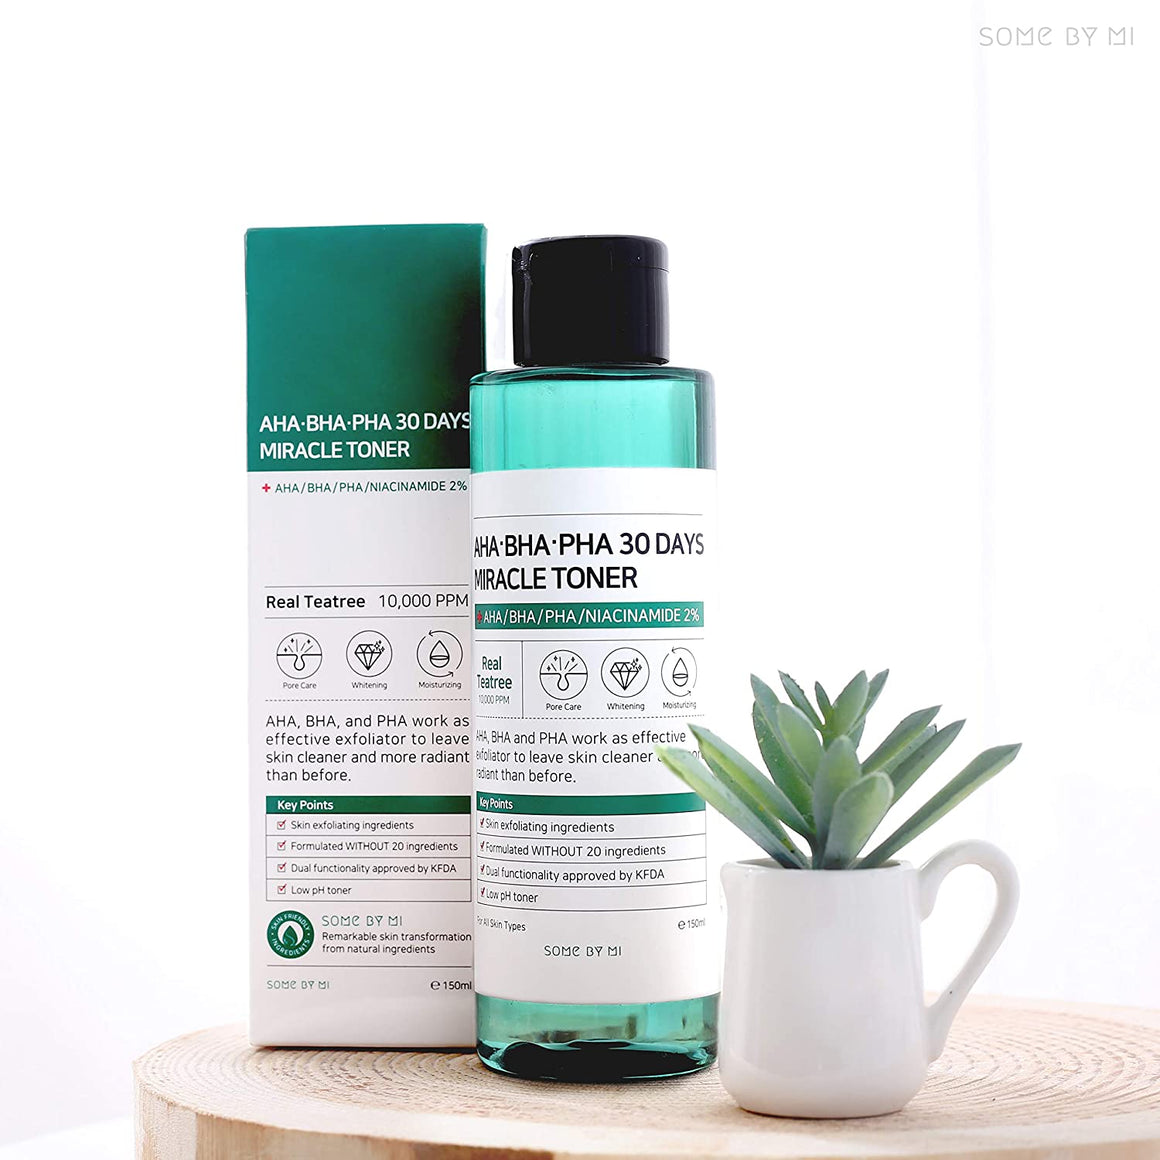 SOME BY MI AHA BHA PHA 30 Days Miracle Toner 150 ml